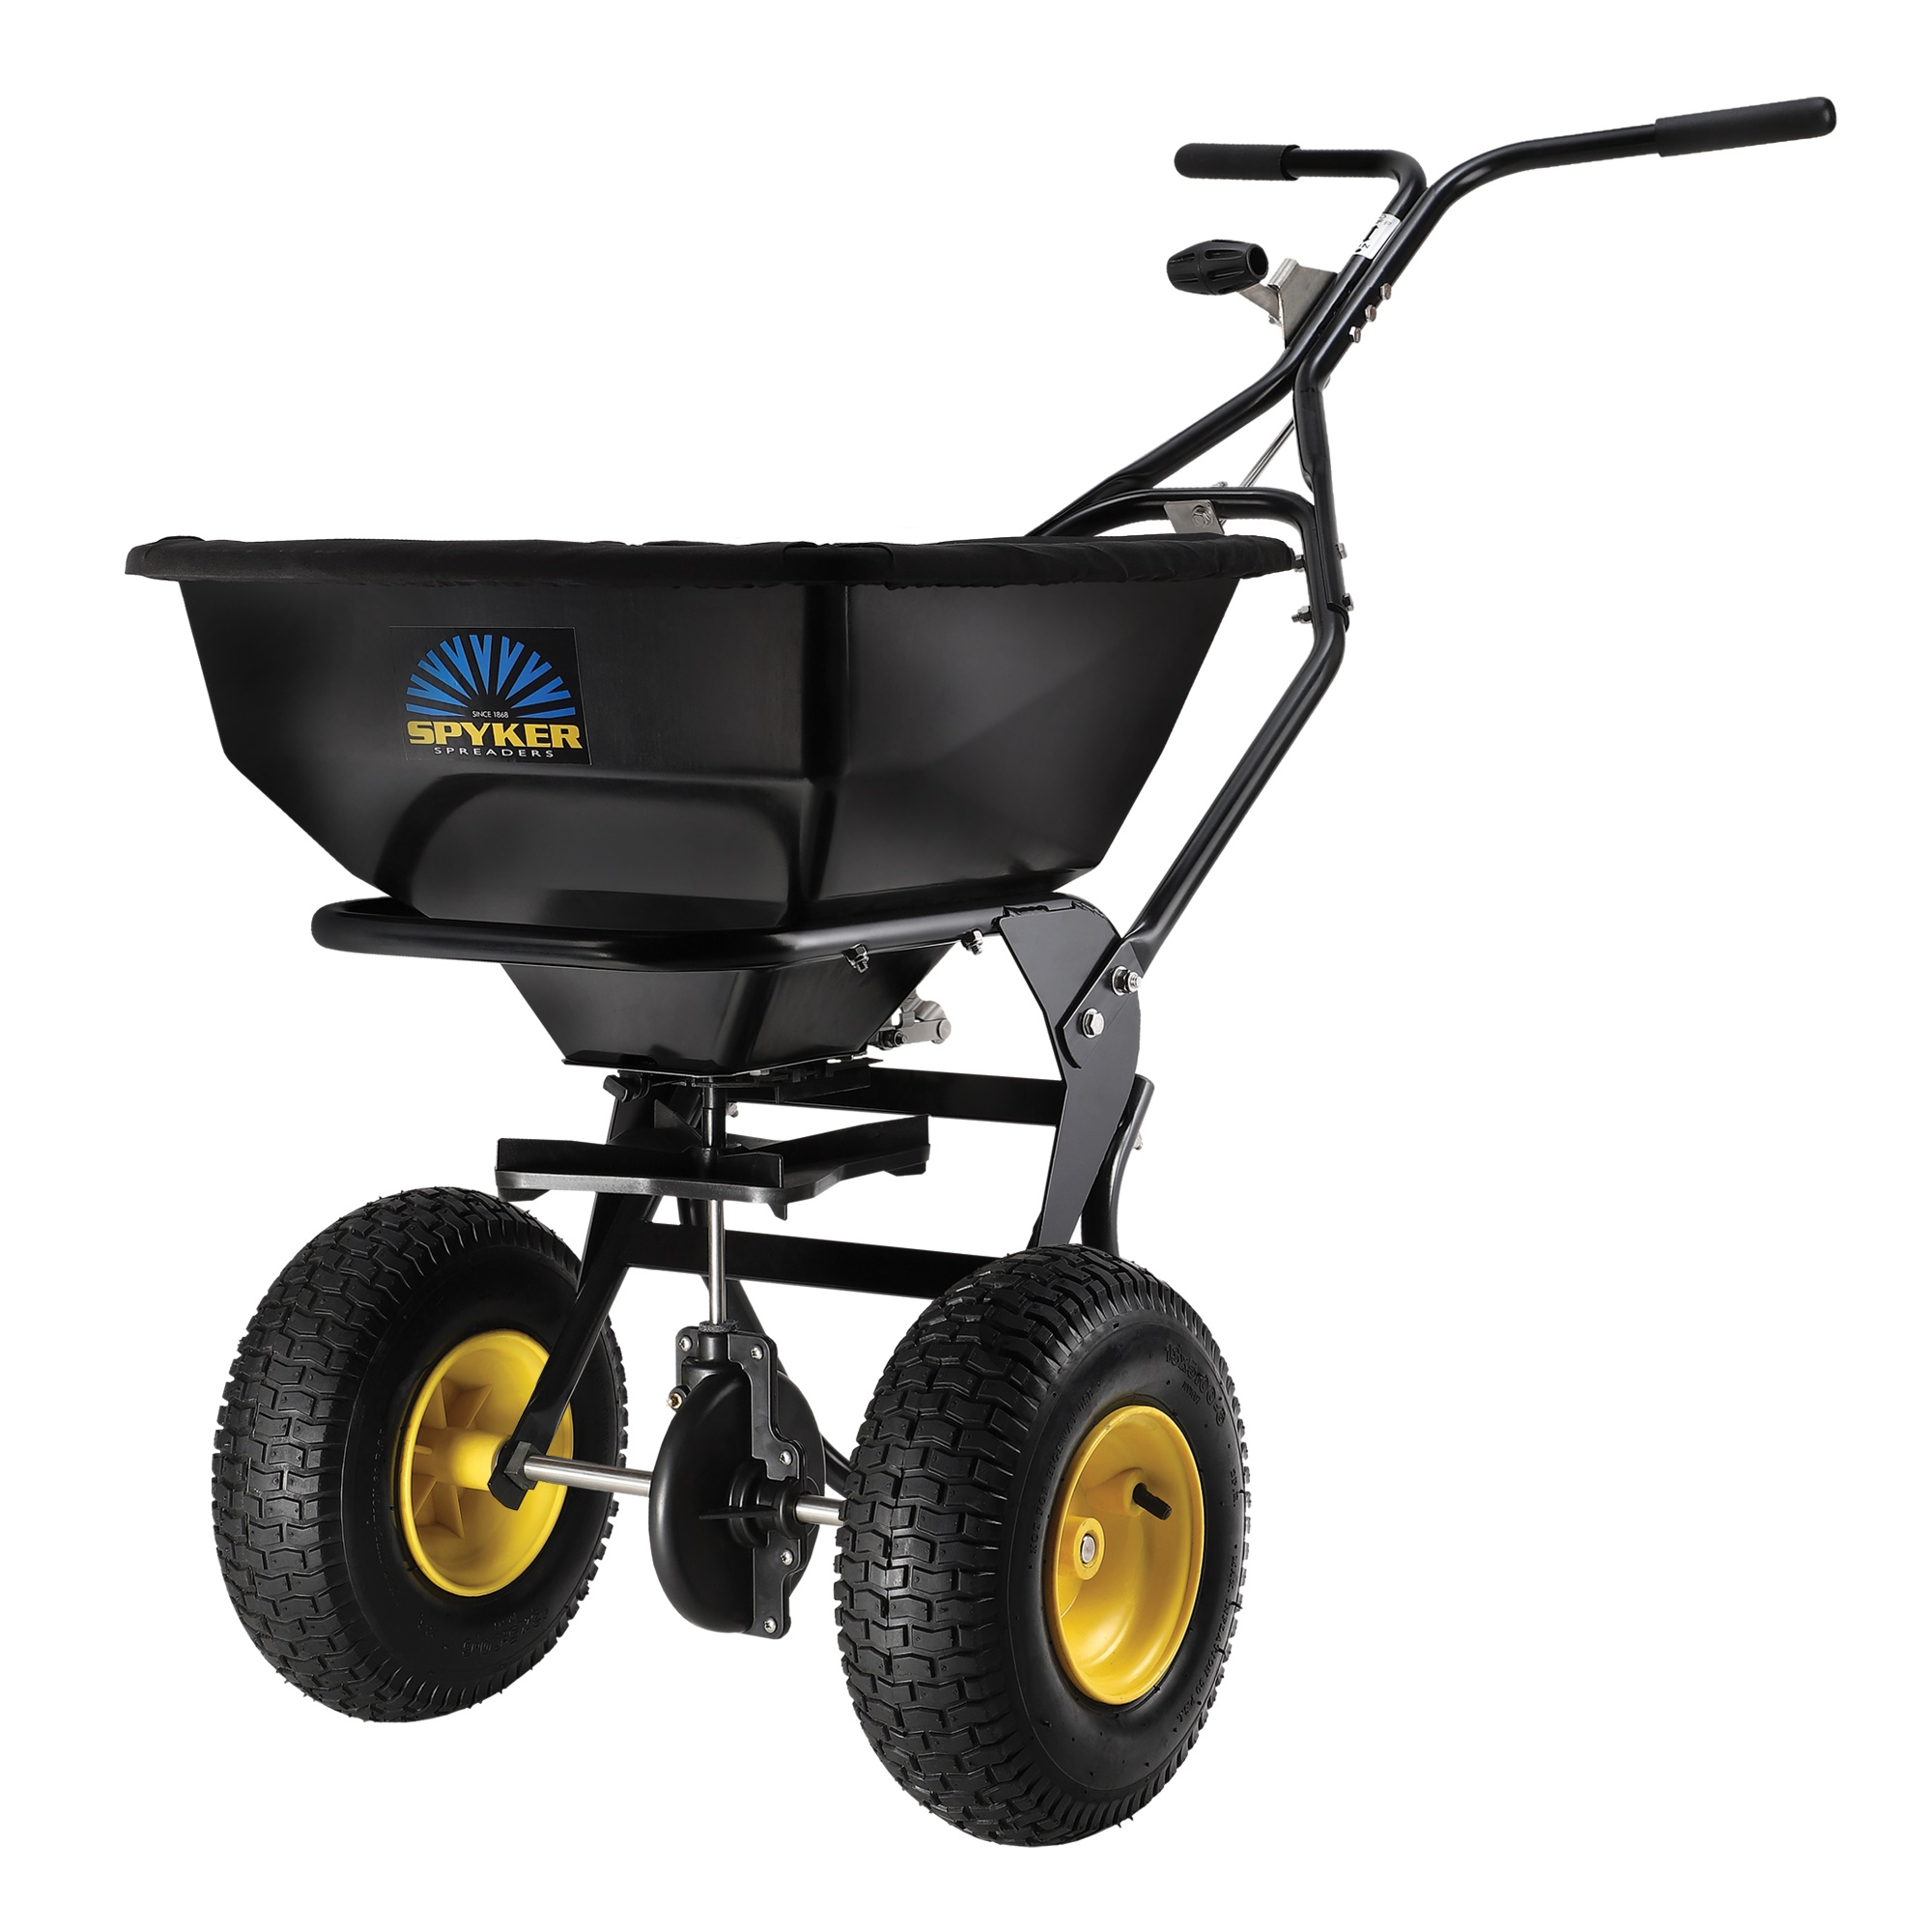 Spyker Ergo-Pro Walk-Behind Broadcast Spreader - 50-Lb. Capacity, Model# SPY50L-1P